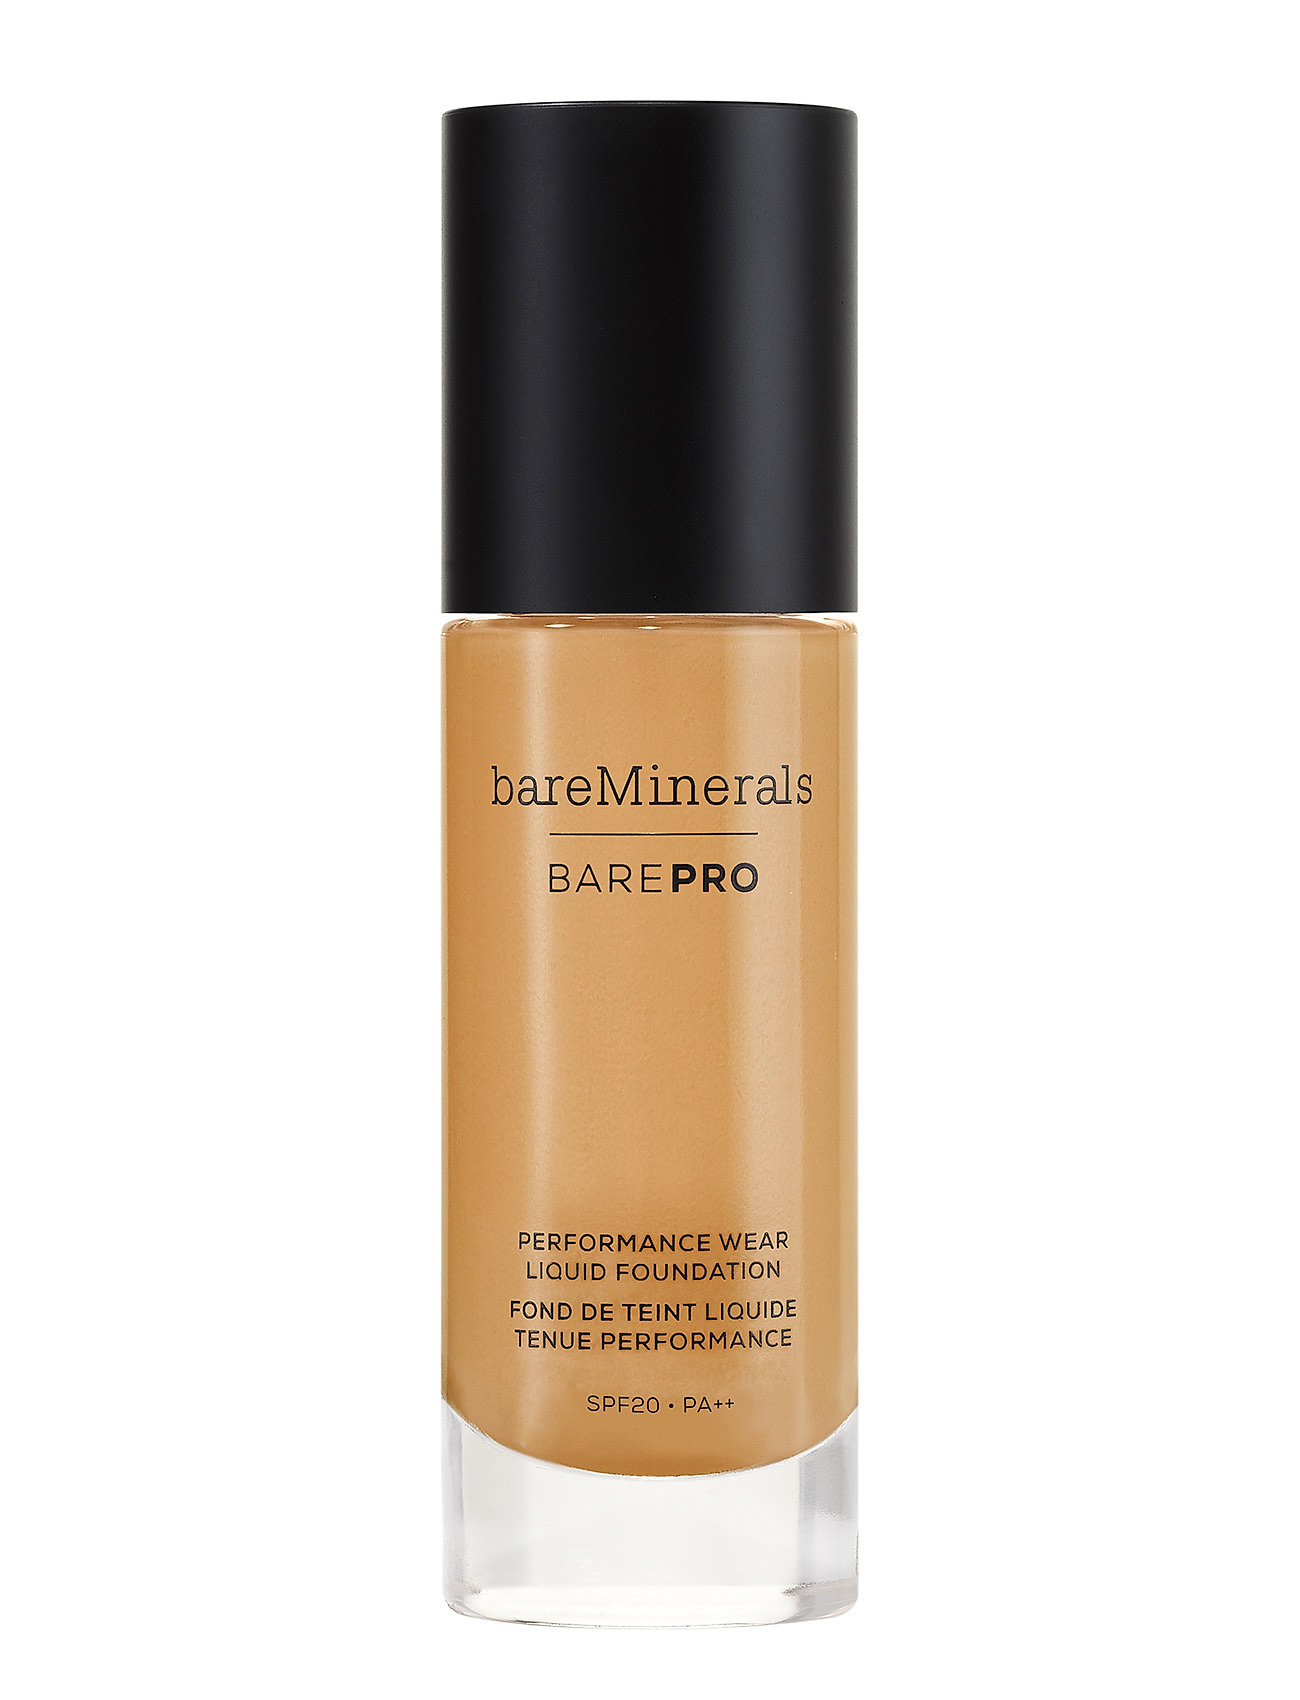 Image of Barepro Performance Wear Liquid Foundation Spf 20 Foundation Makeup BareMinerals (3067521641)